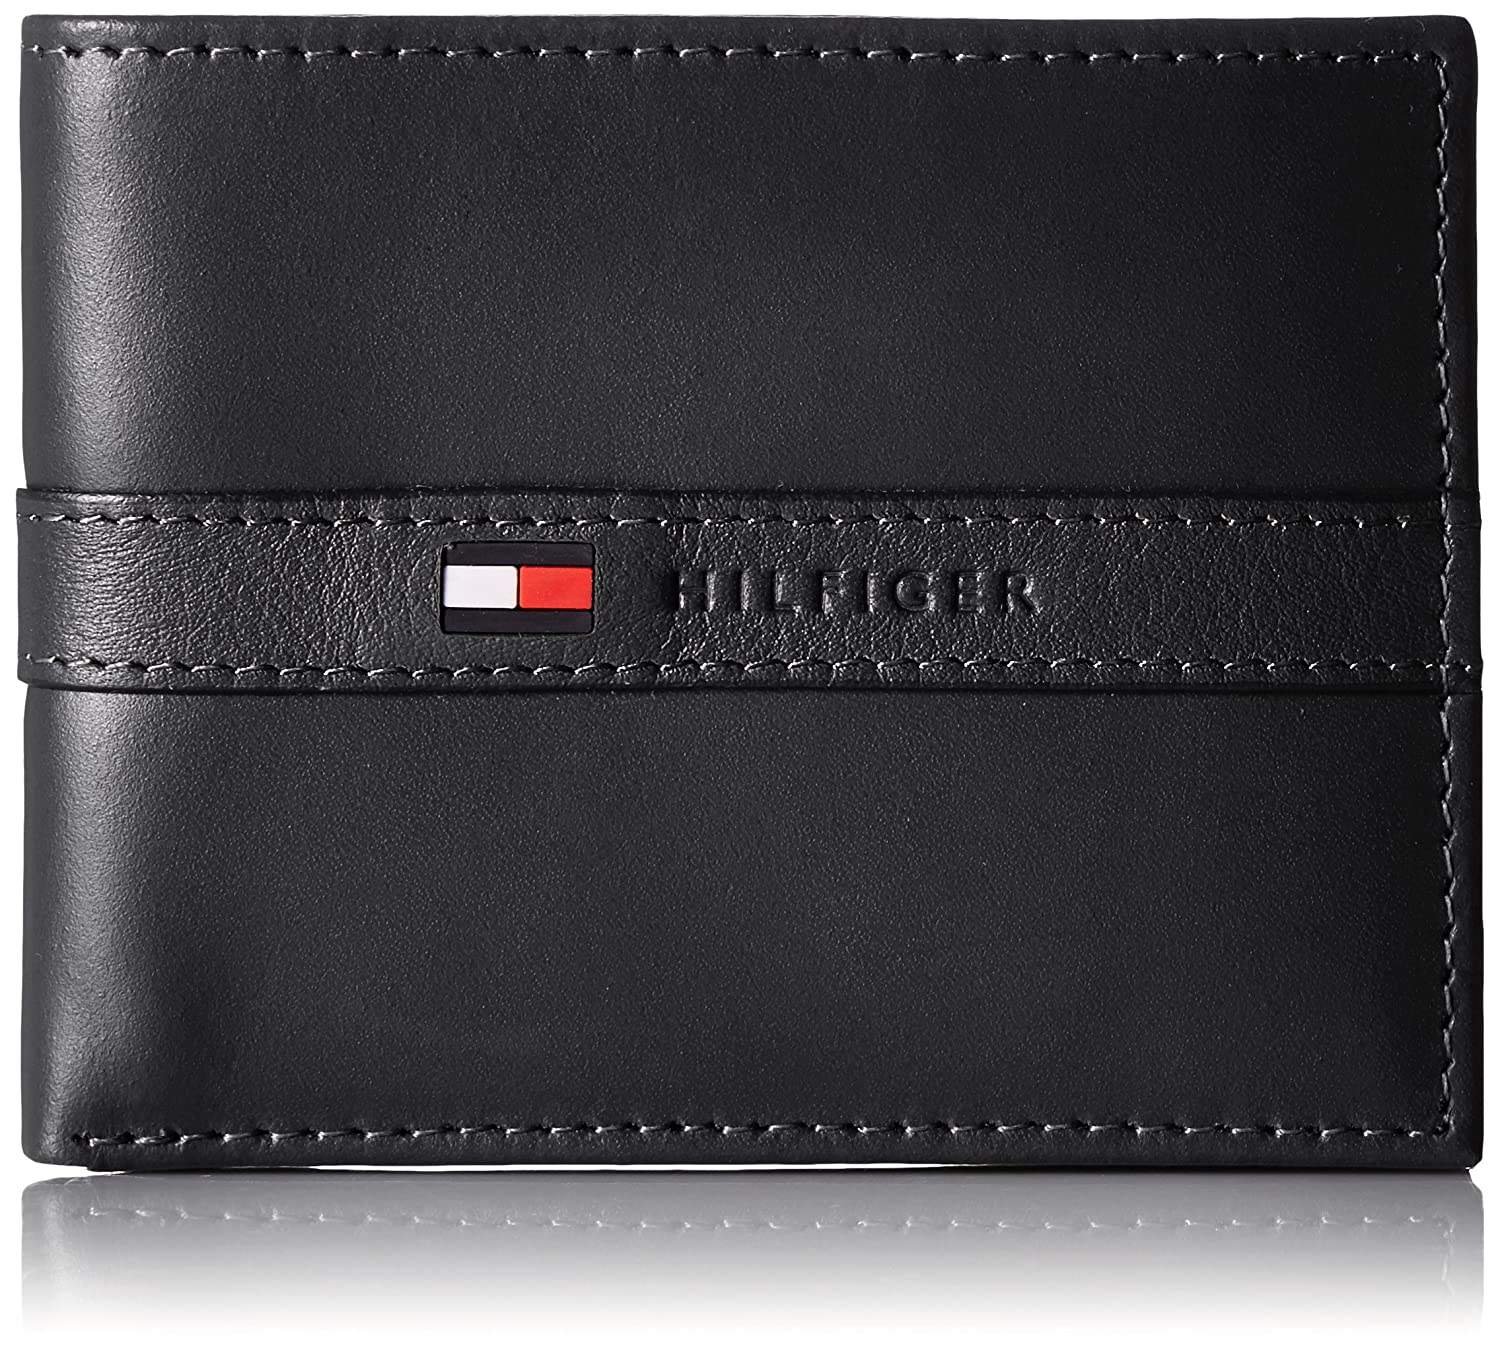 Phone Wallet - Sales Up to -50% Tommy Hilfiger 5sTQw6TxT